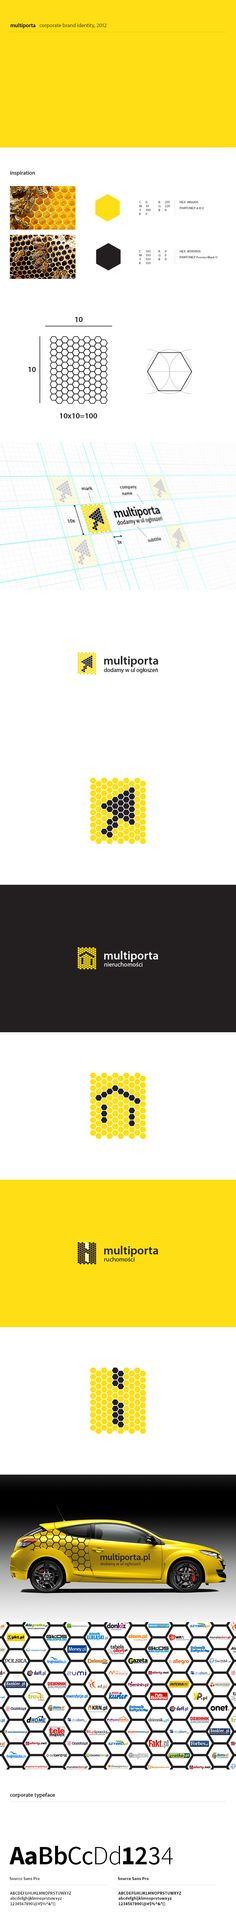 Logo design and for Multiporta.pl